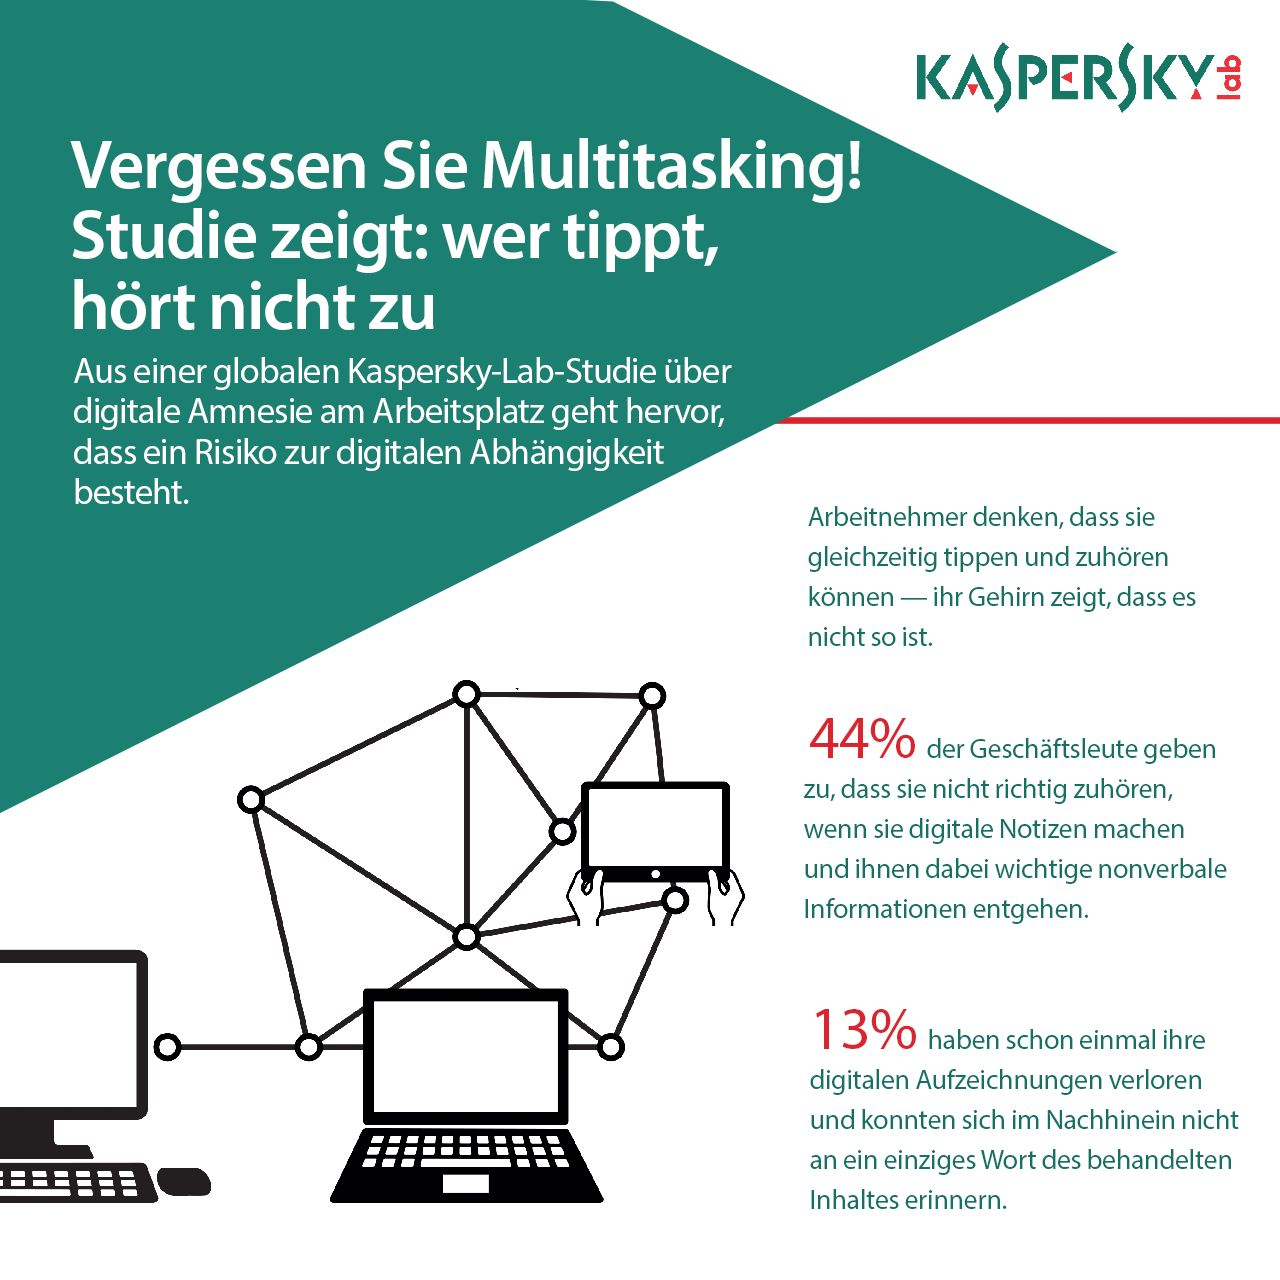 KASPERSKY lab, Digitale Amnesie, Multitasking